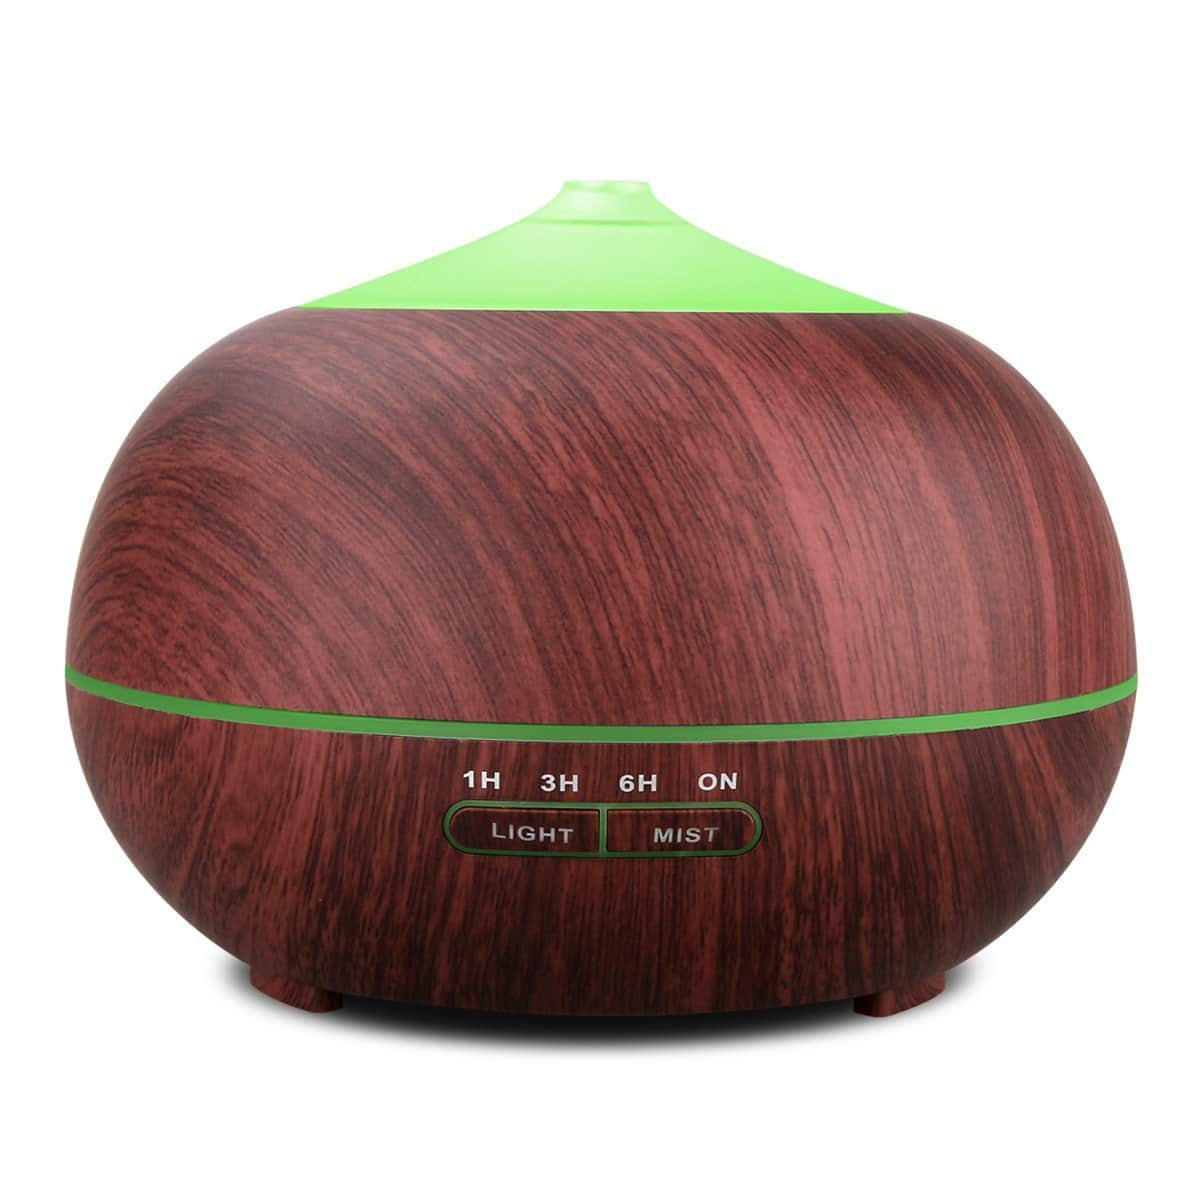 Tenswall Essential Oil Diffuser, 400ml Aromatherapy Diffuser Ultrasonic Cool Mist Humidifier, Auto Shut-off, 4 Timer Settings, 7 Color LED Light $12.76 AC Amazon Prime